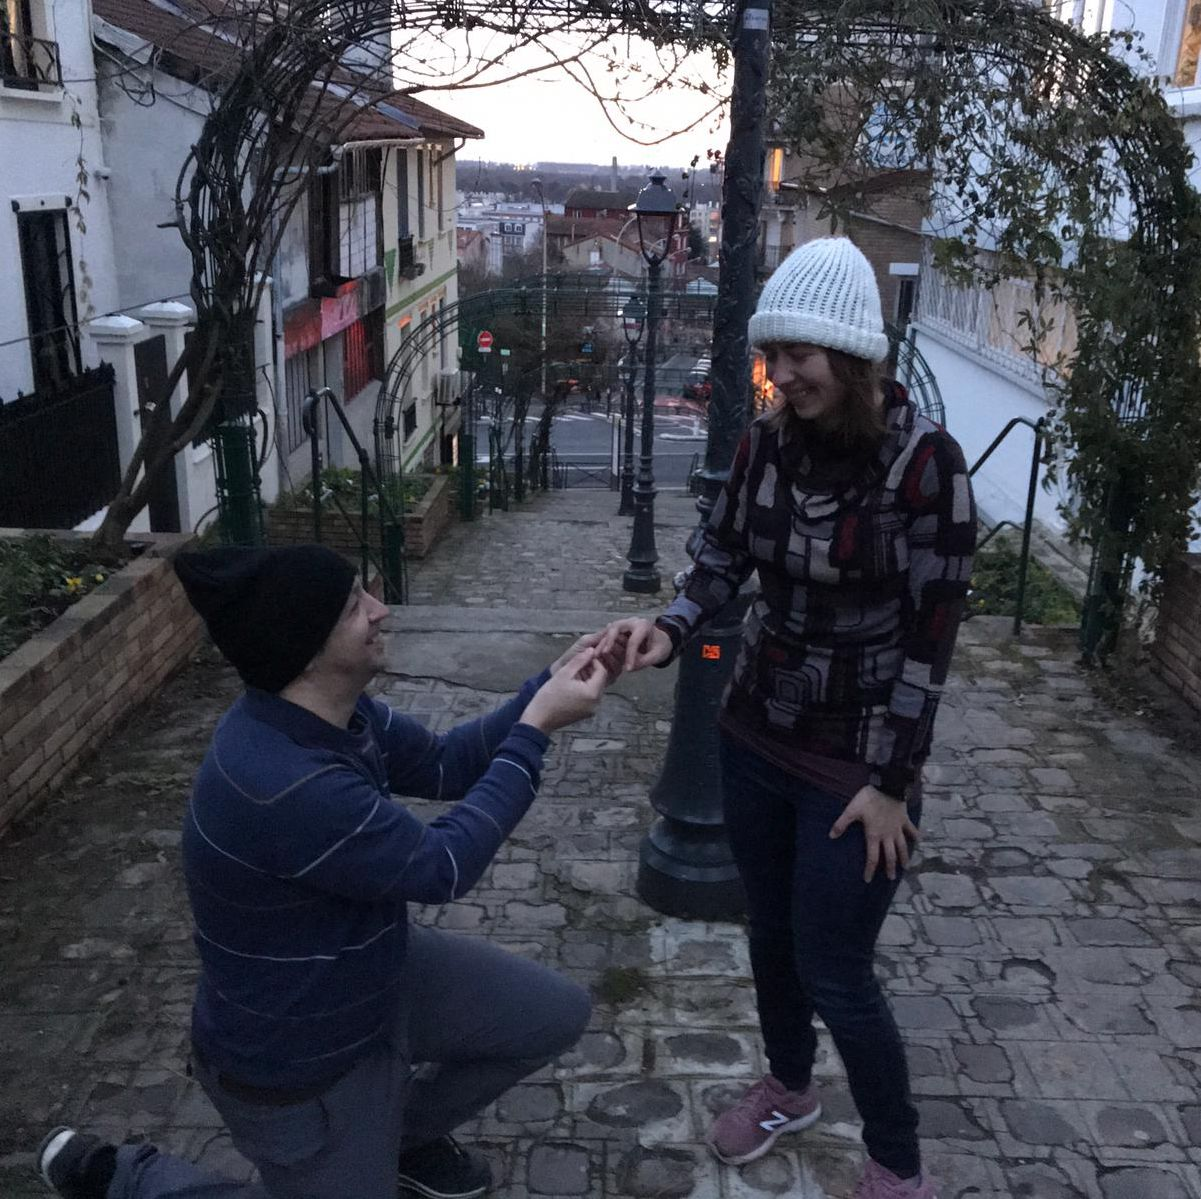 Man proposes on one knee in city